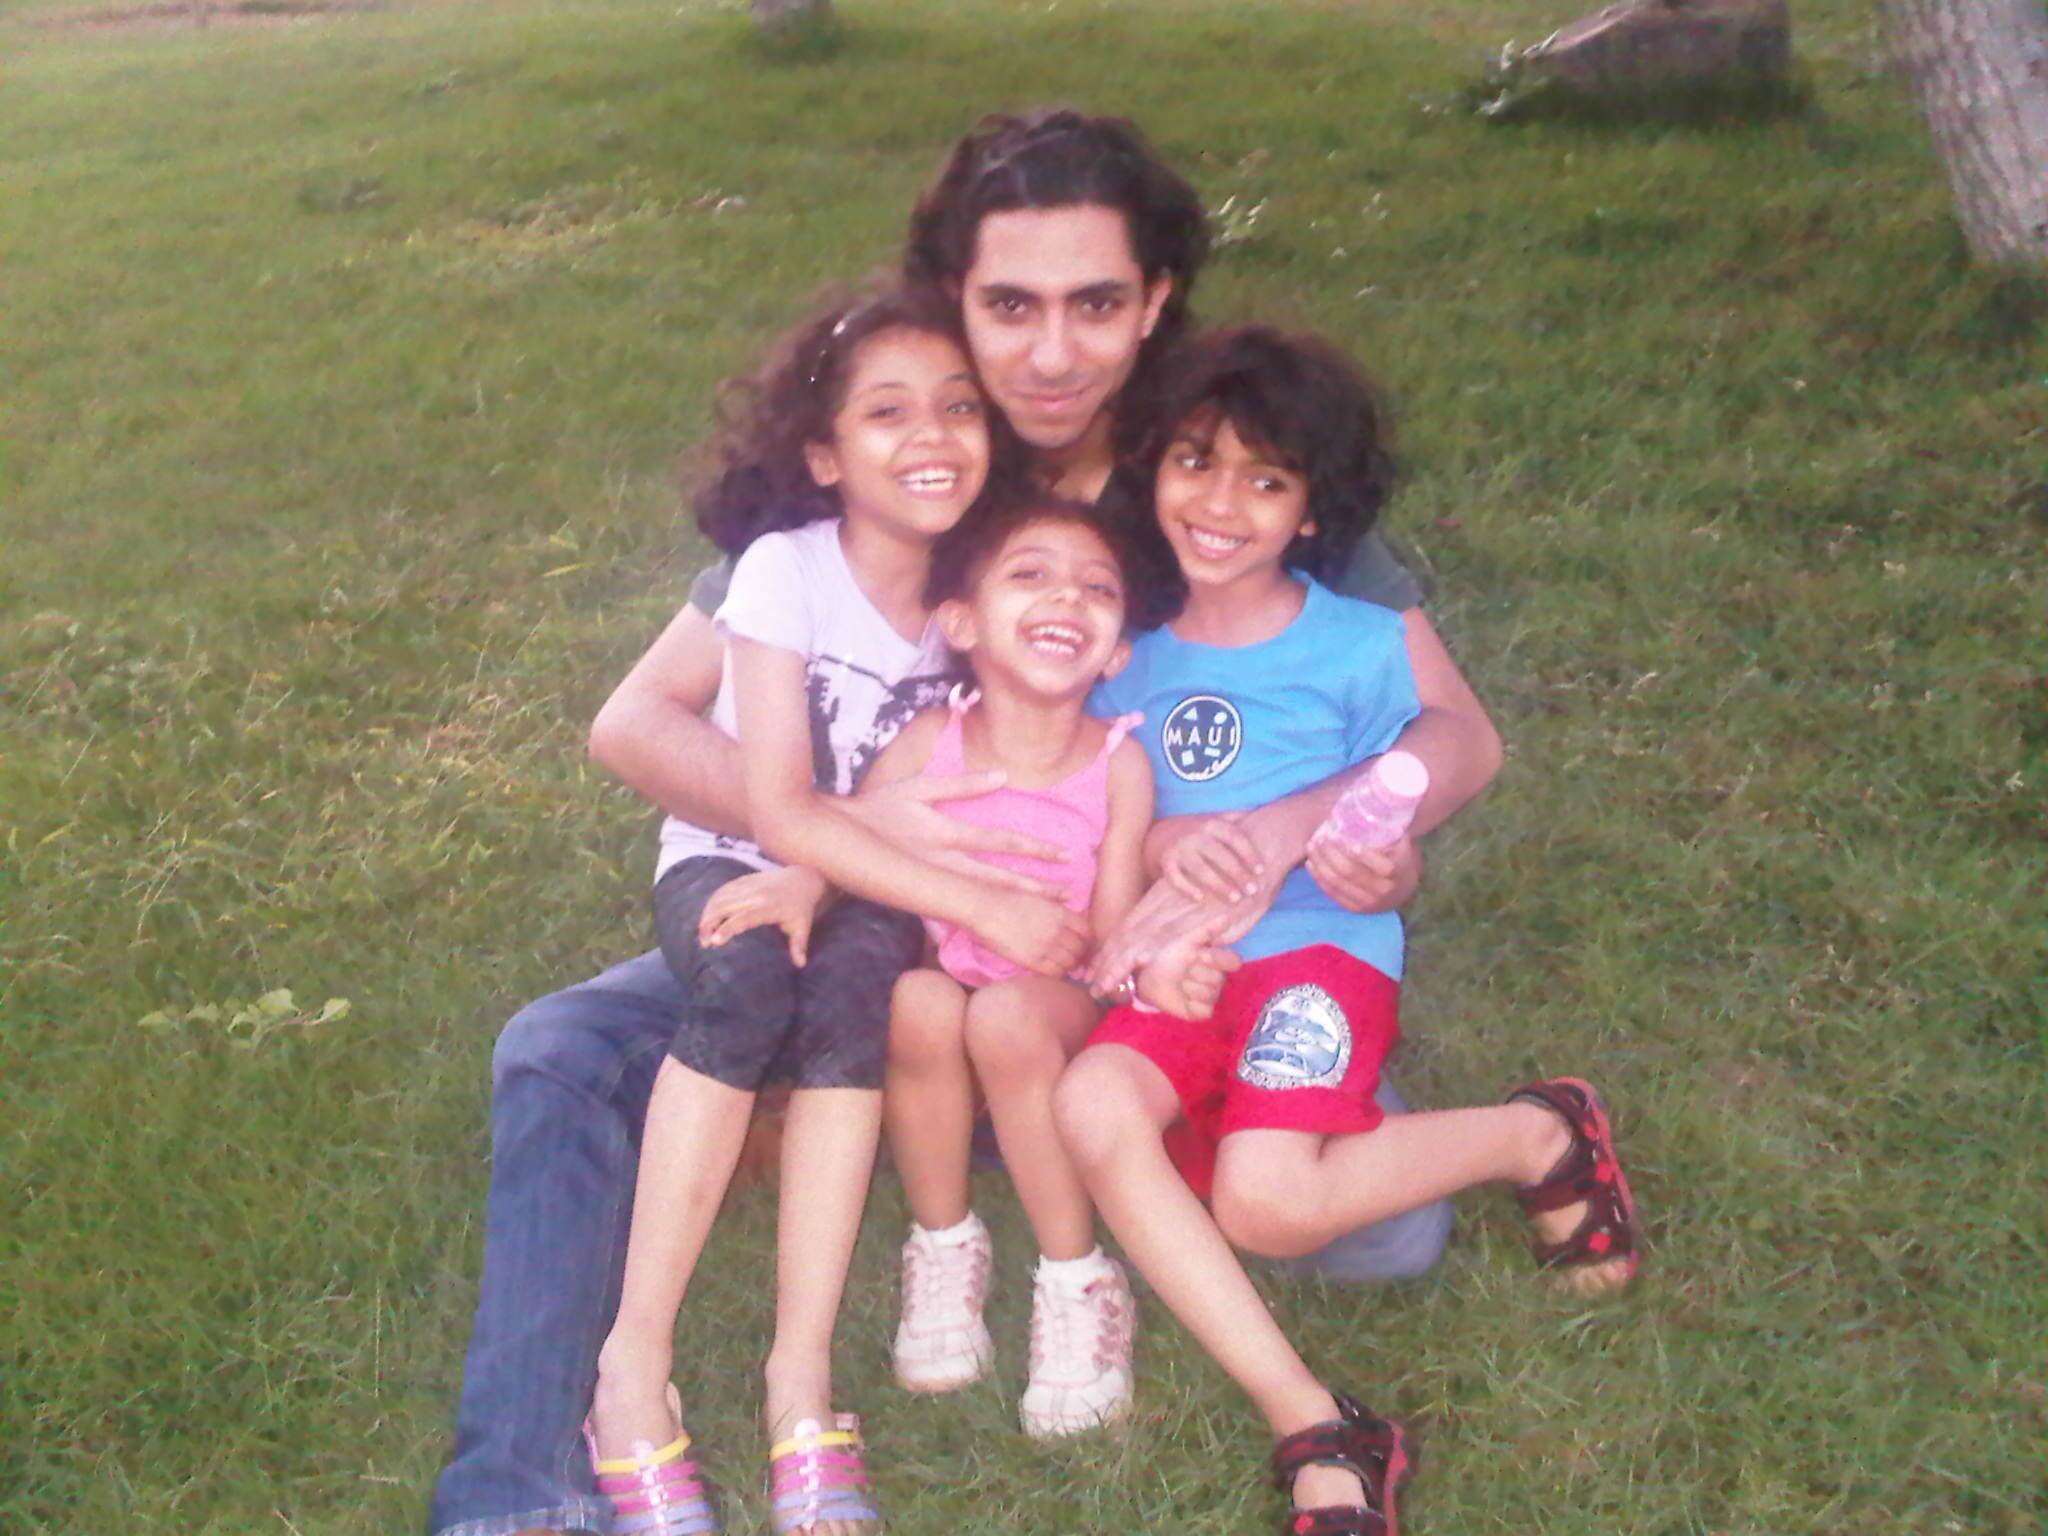 Raif Badawi with his kids.